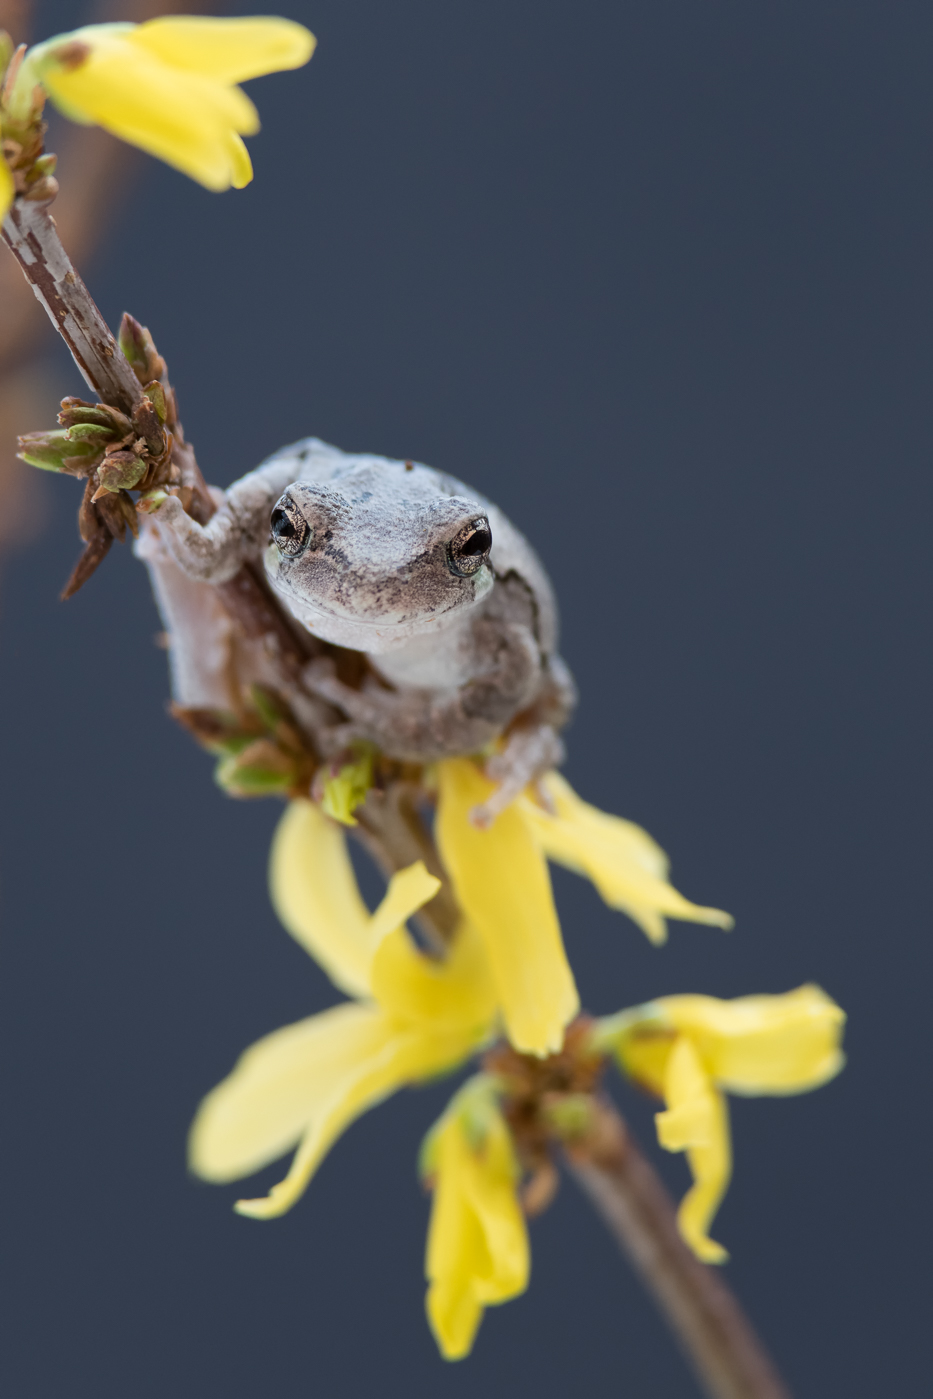 Gray Tree Frog and  Forsythia viridissima   Nikon D500 and Nikon 200-400mm f/4 VR